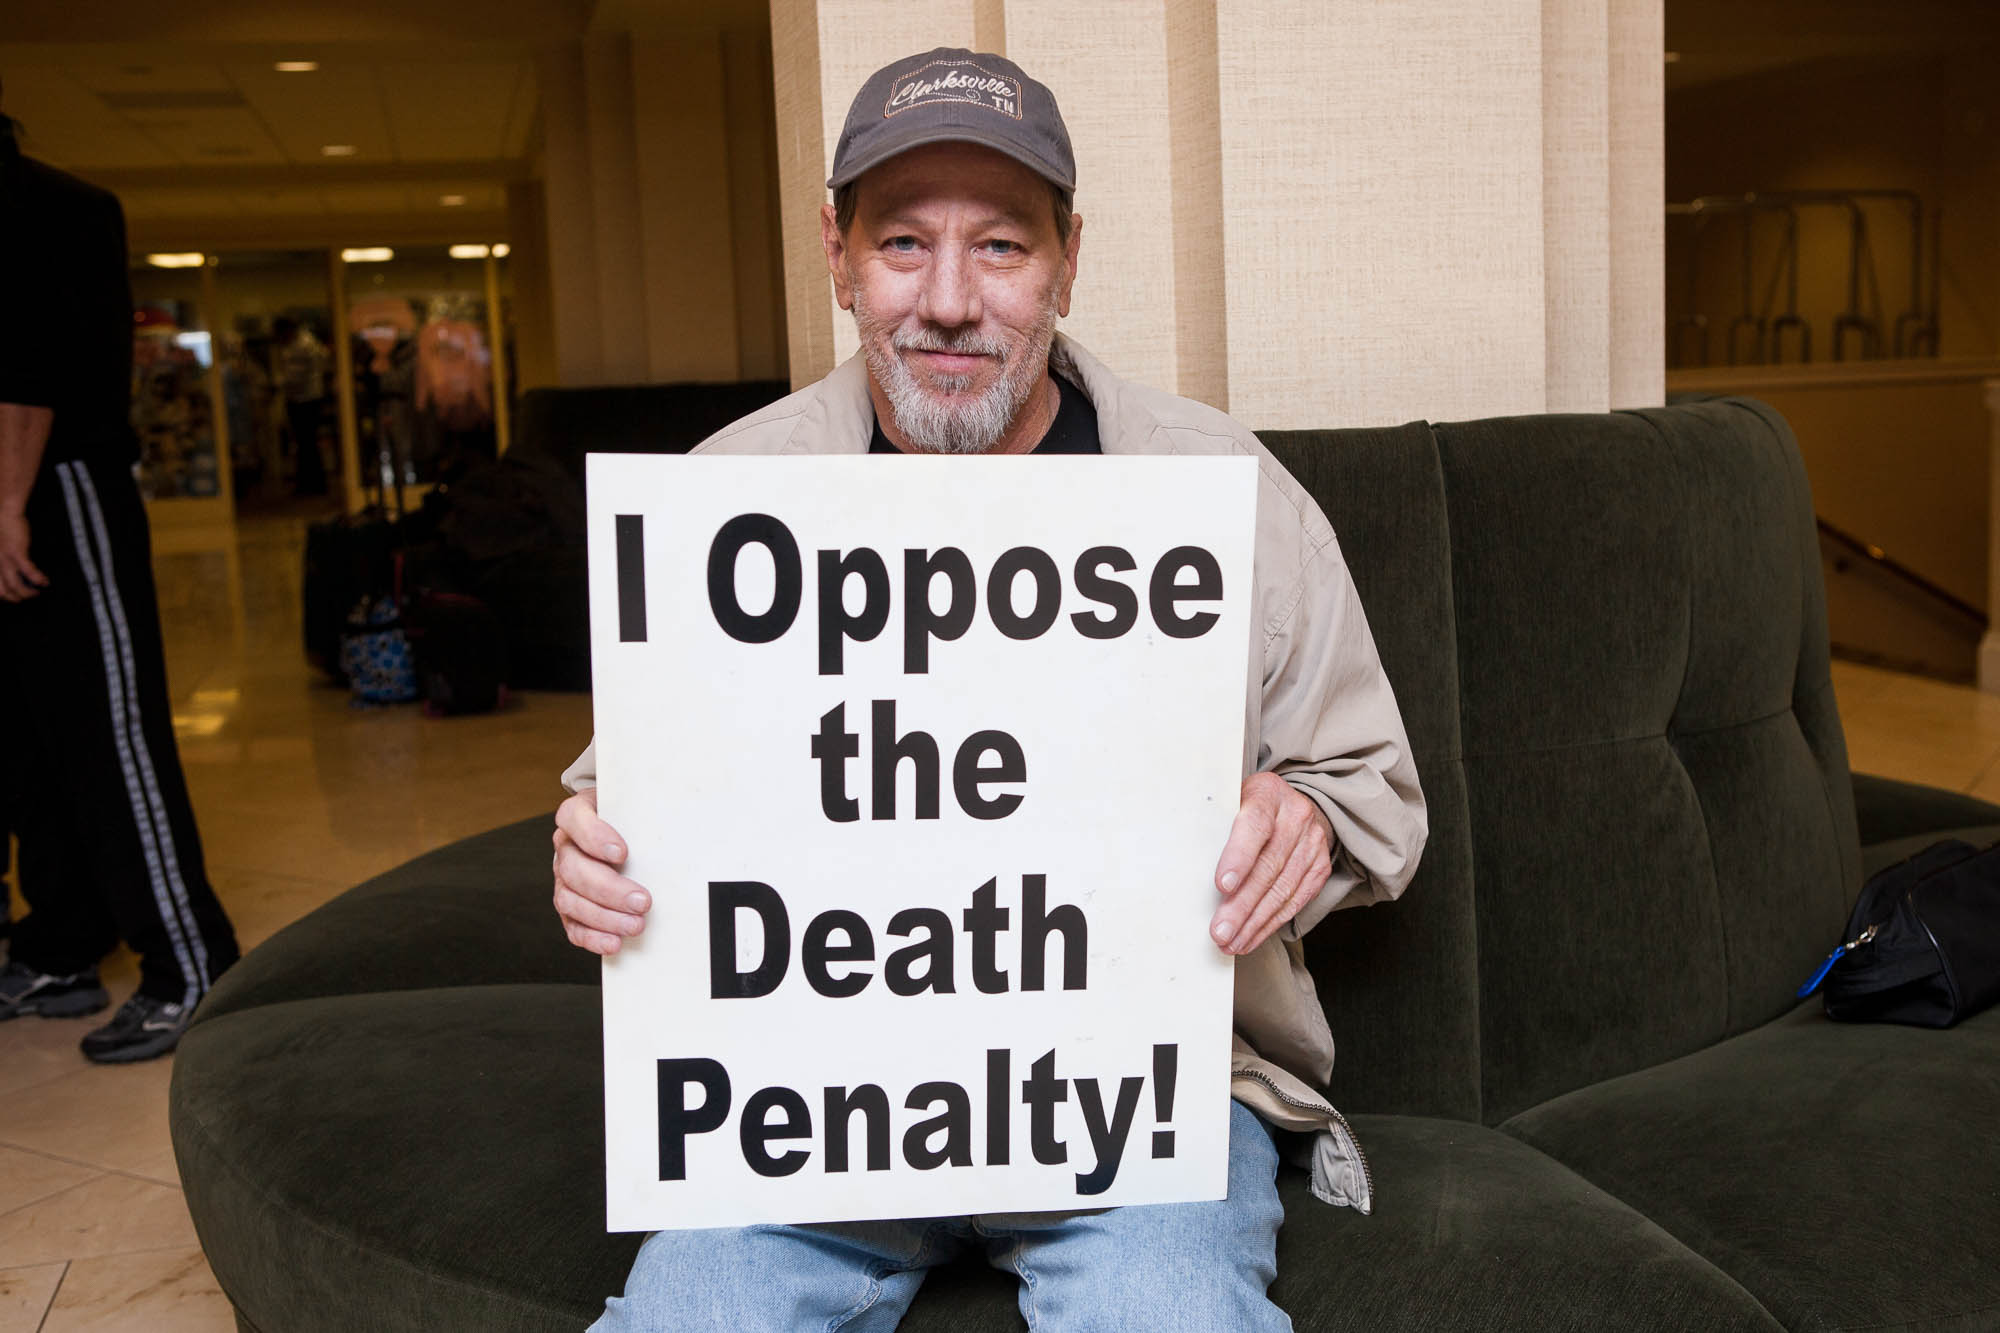 Gregory Wilhoit - Oklahoma - death row innocent, wrongful conviction, exonerated